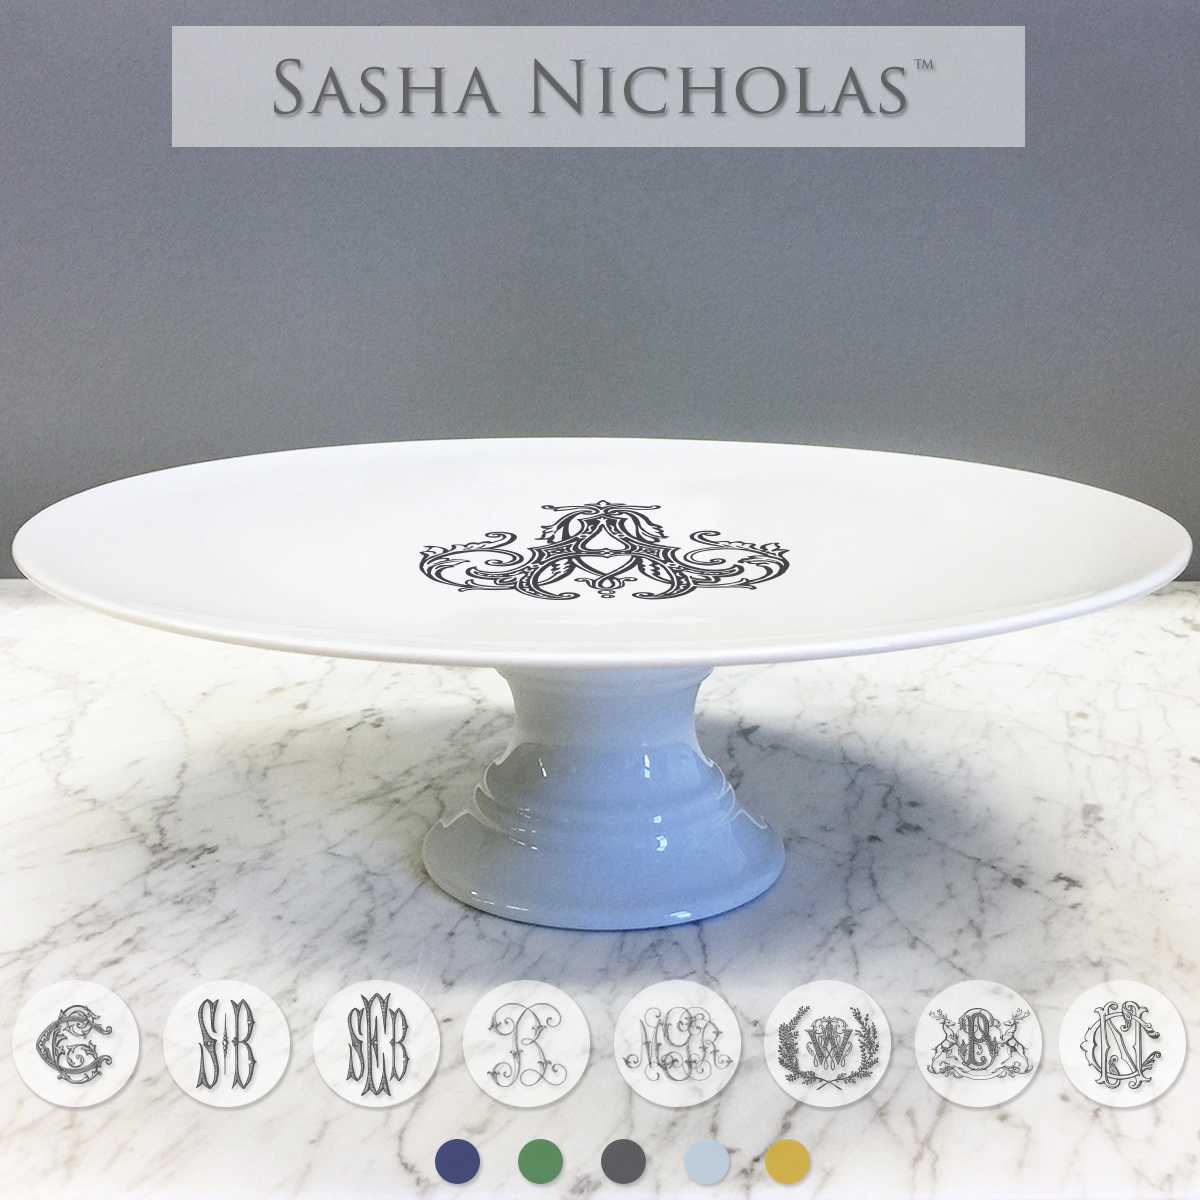 A beautiful addition to your dinnerware collection and to adorn your tablescapes with. It makes the perfect gift for your wedding registry with the included inscription on back of the platter. Choose from their signature font styles or use a custom monogram or crest of your choice! | Sasha Nicholas's white porcelain cake plate